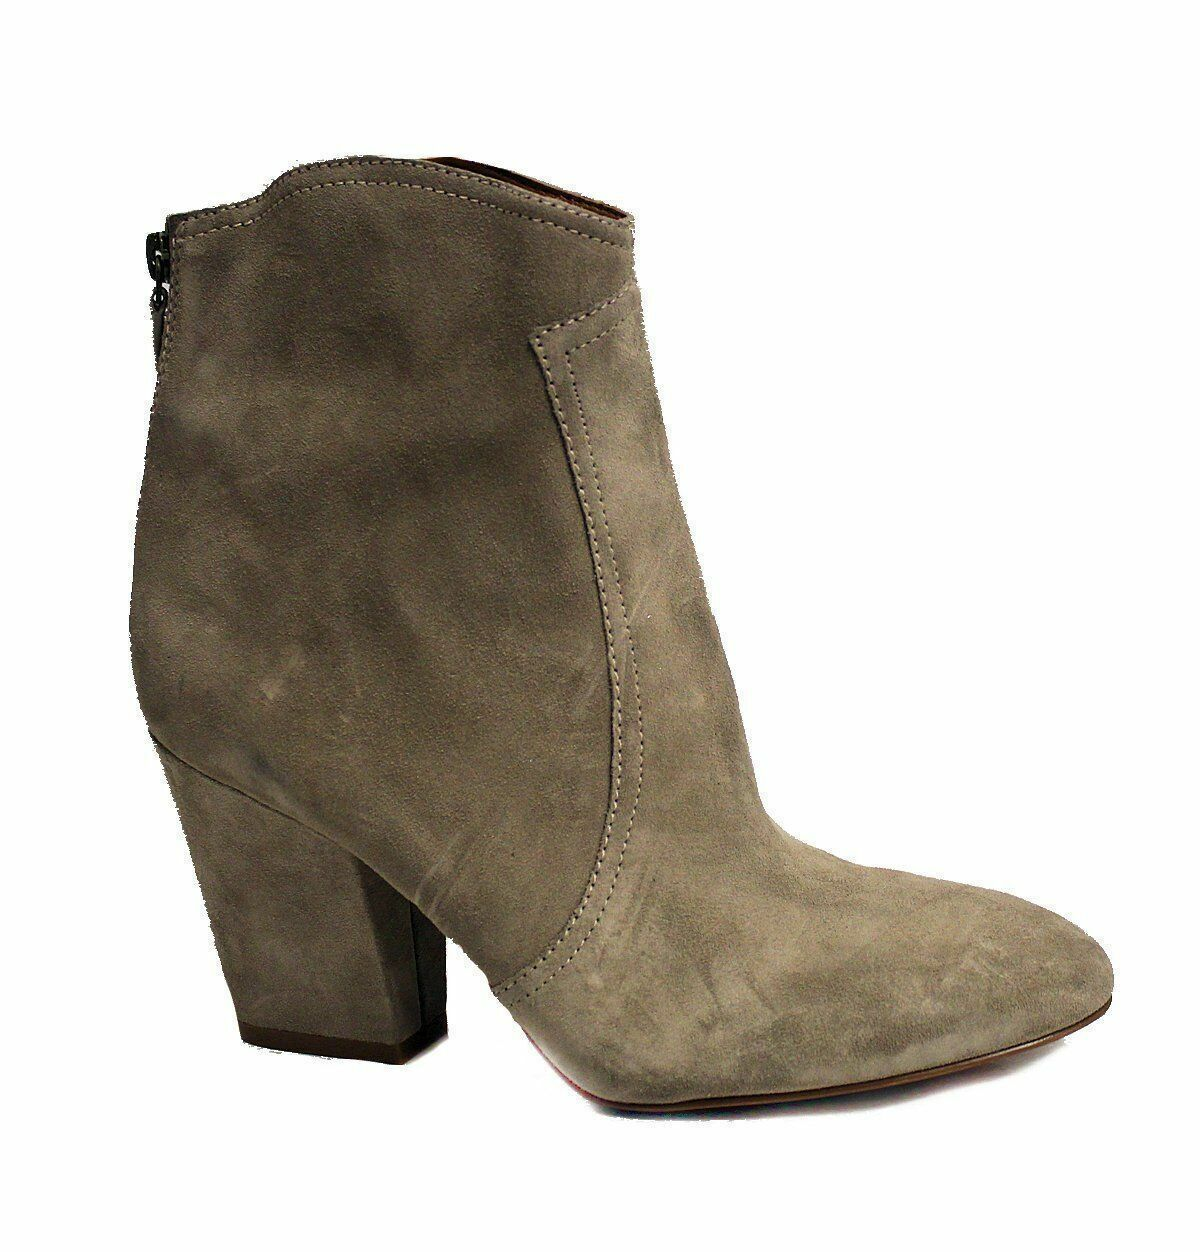 Nine West Women's Dashiell Suede Boot Taupe US 9 NOB